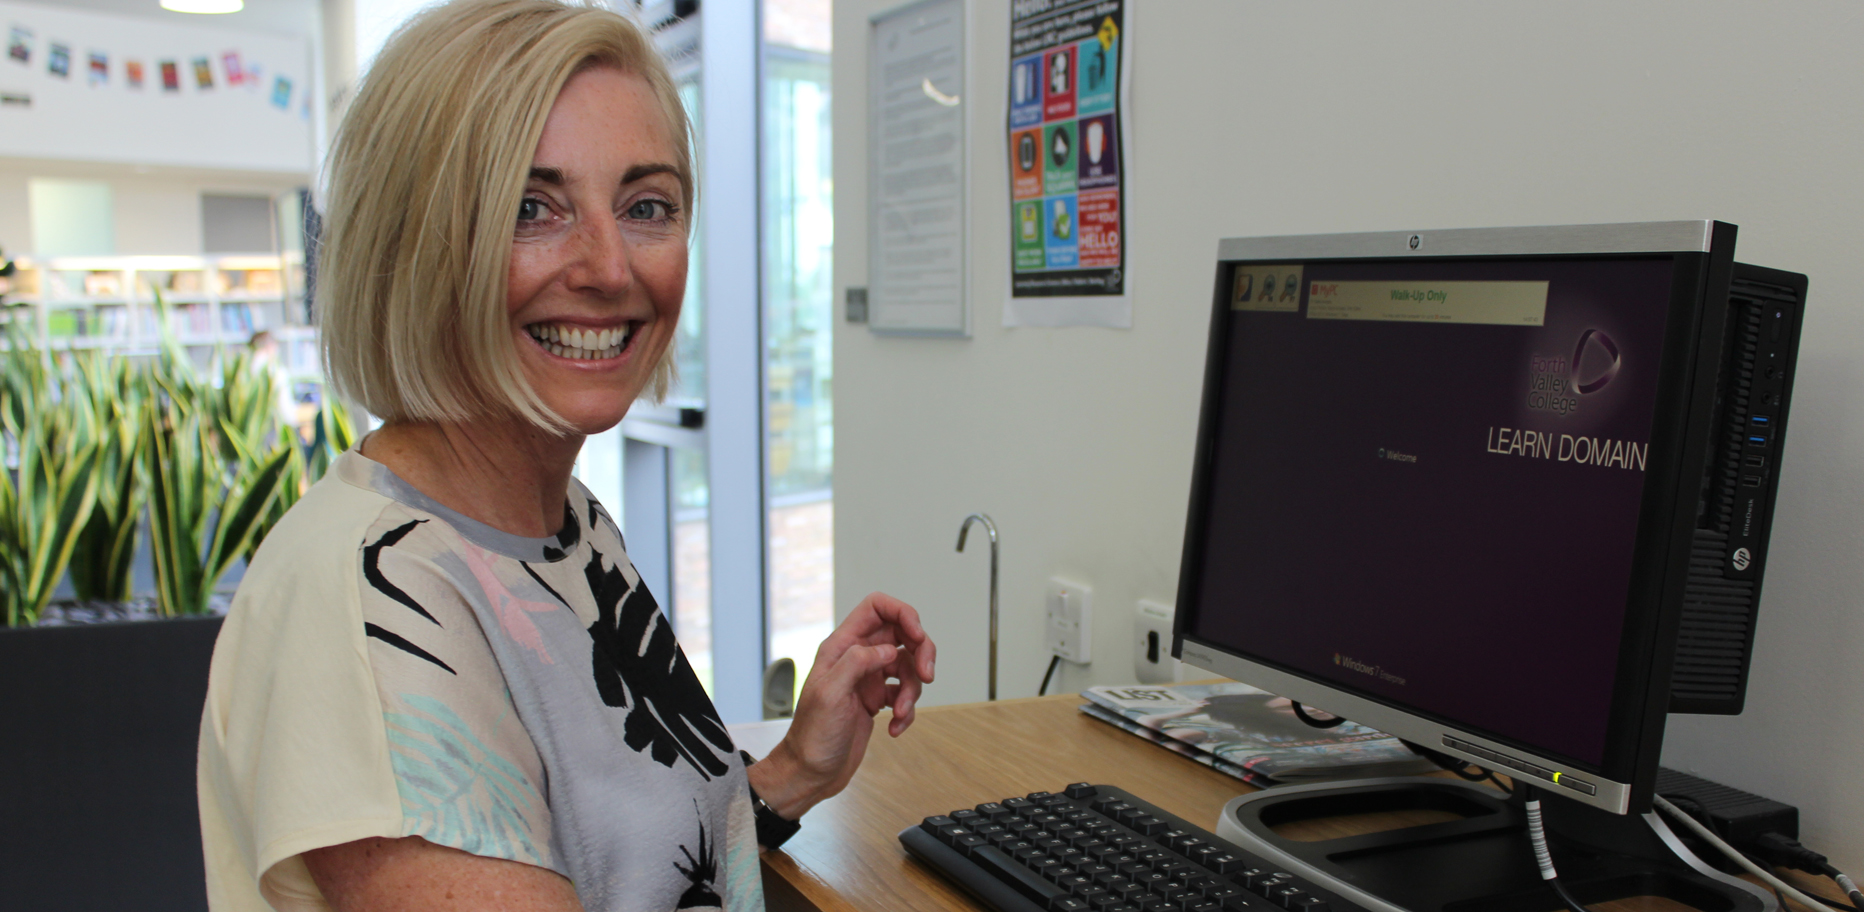 Lesley swaps Beauty for Business career